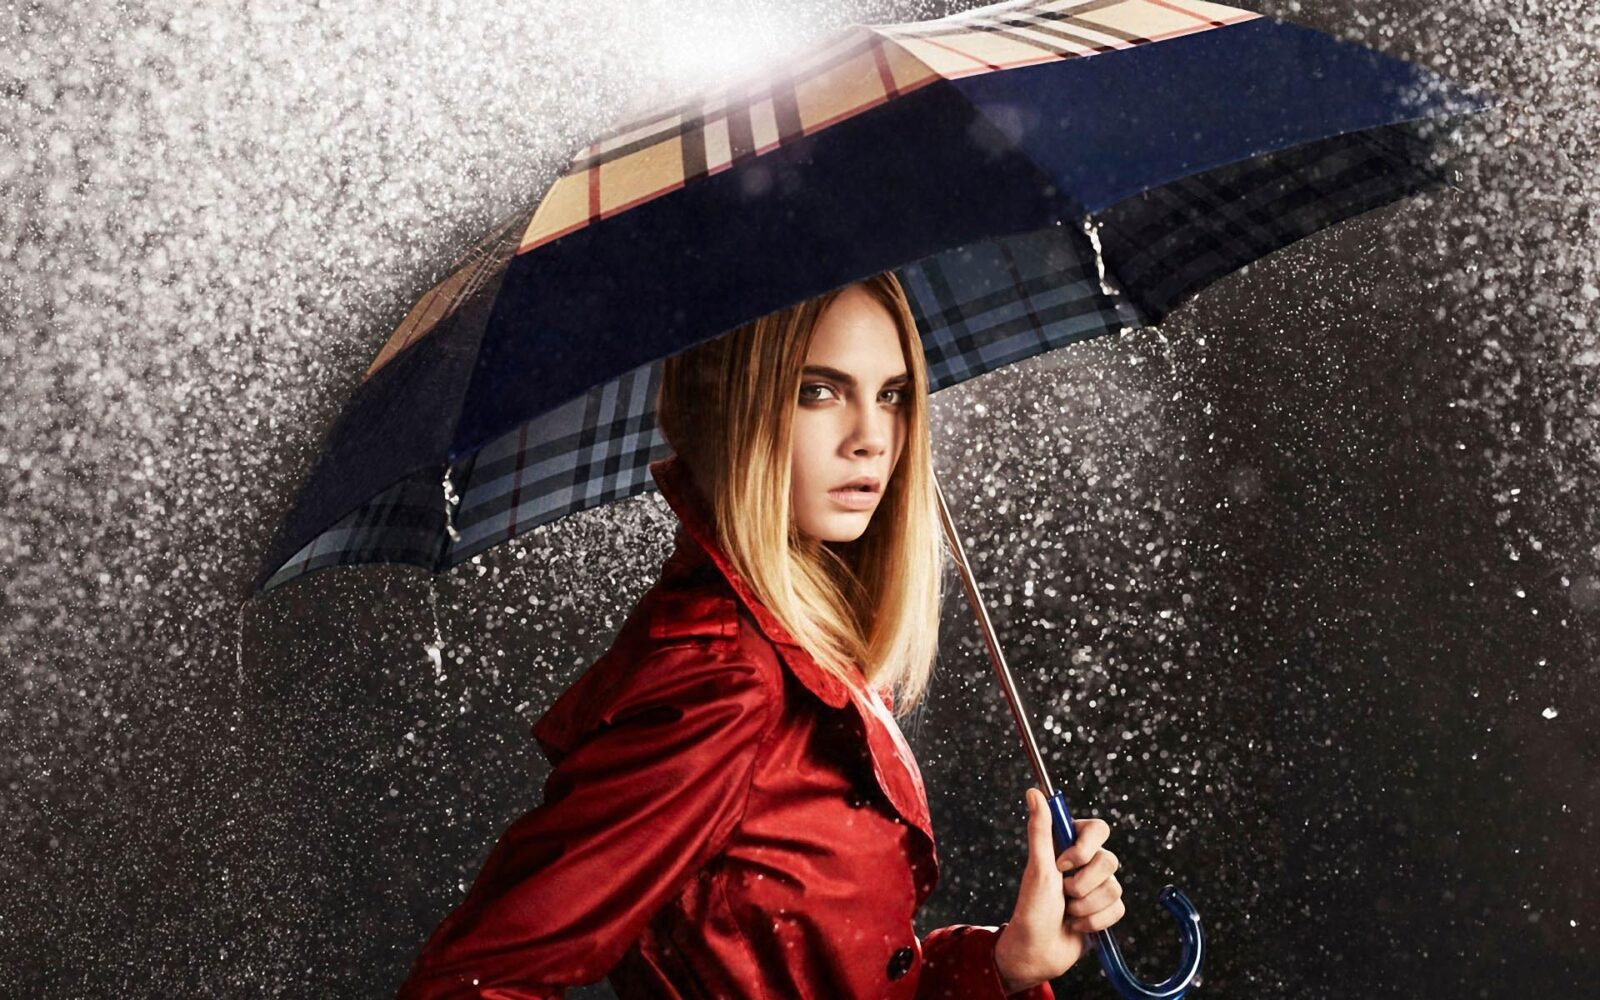 Free download picture Cara Delevingne with umbrella